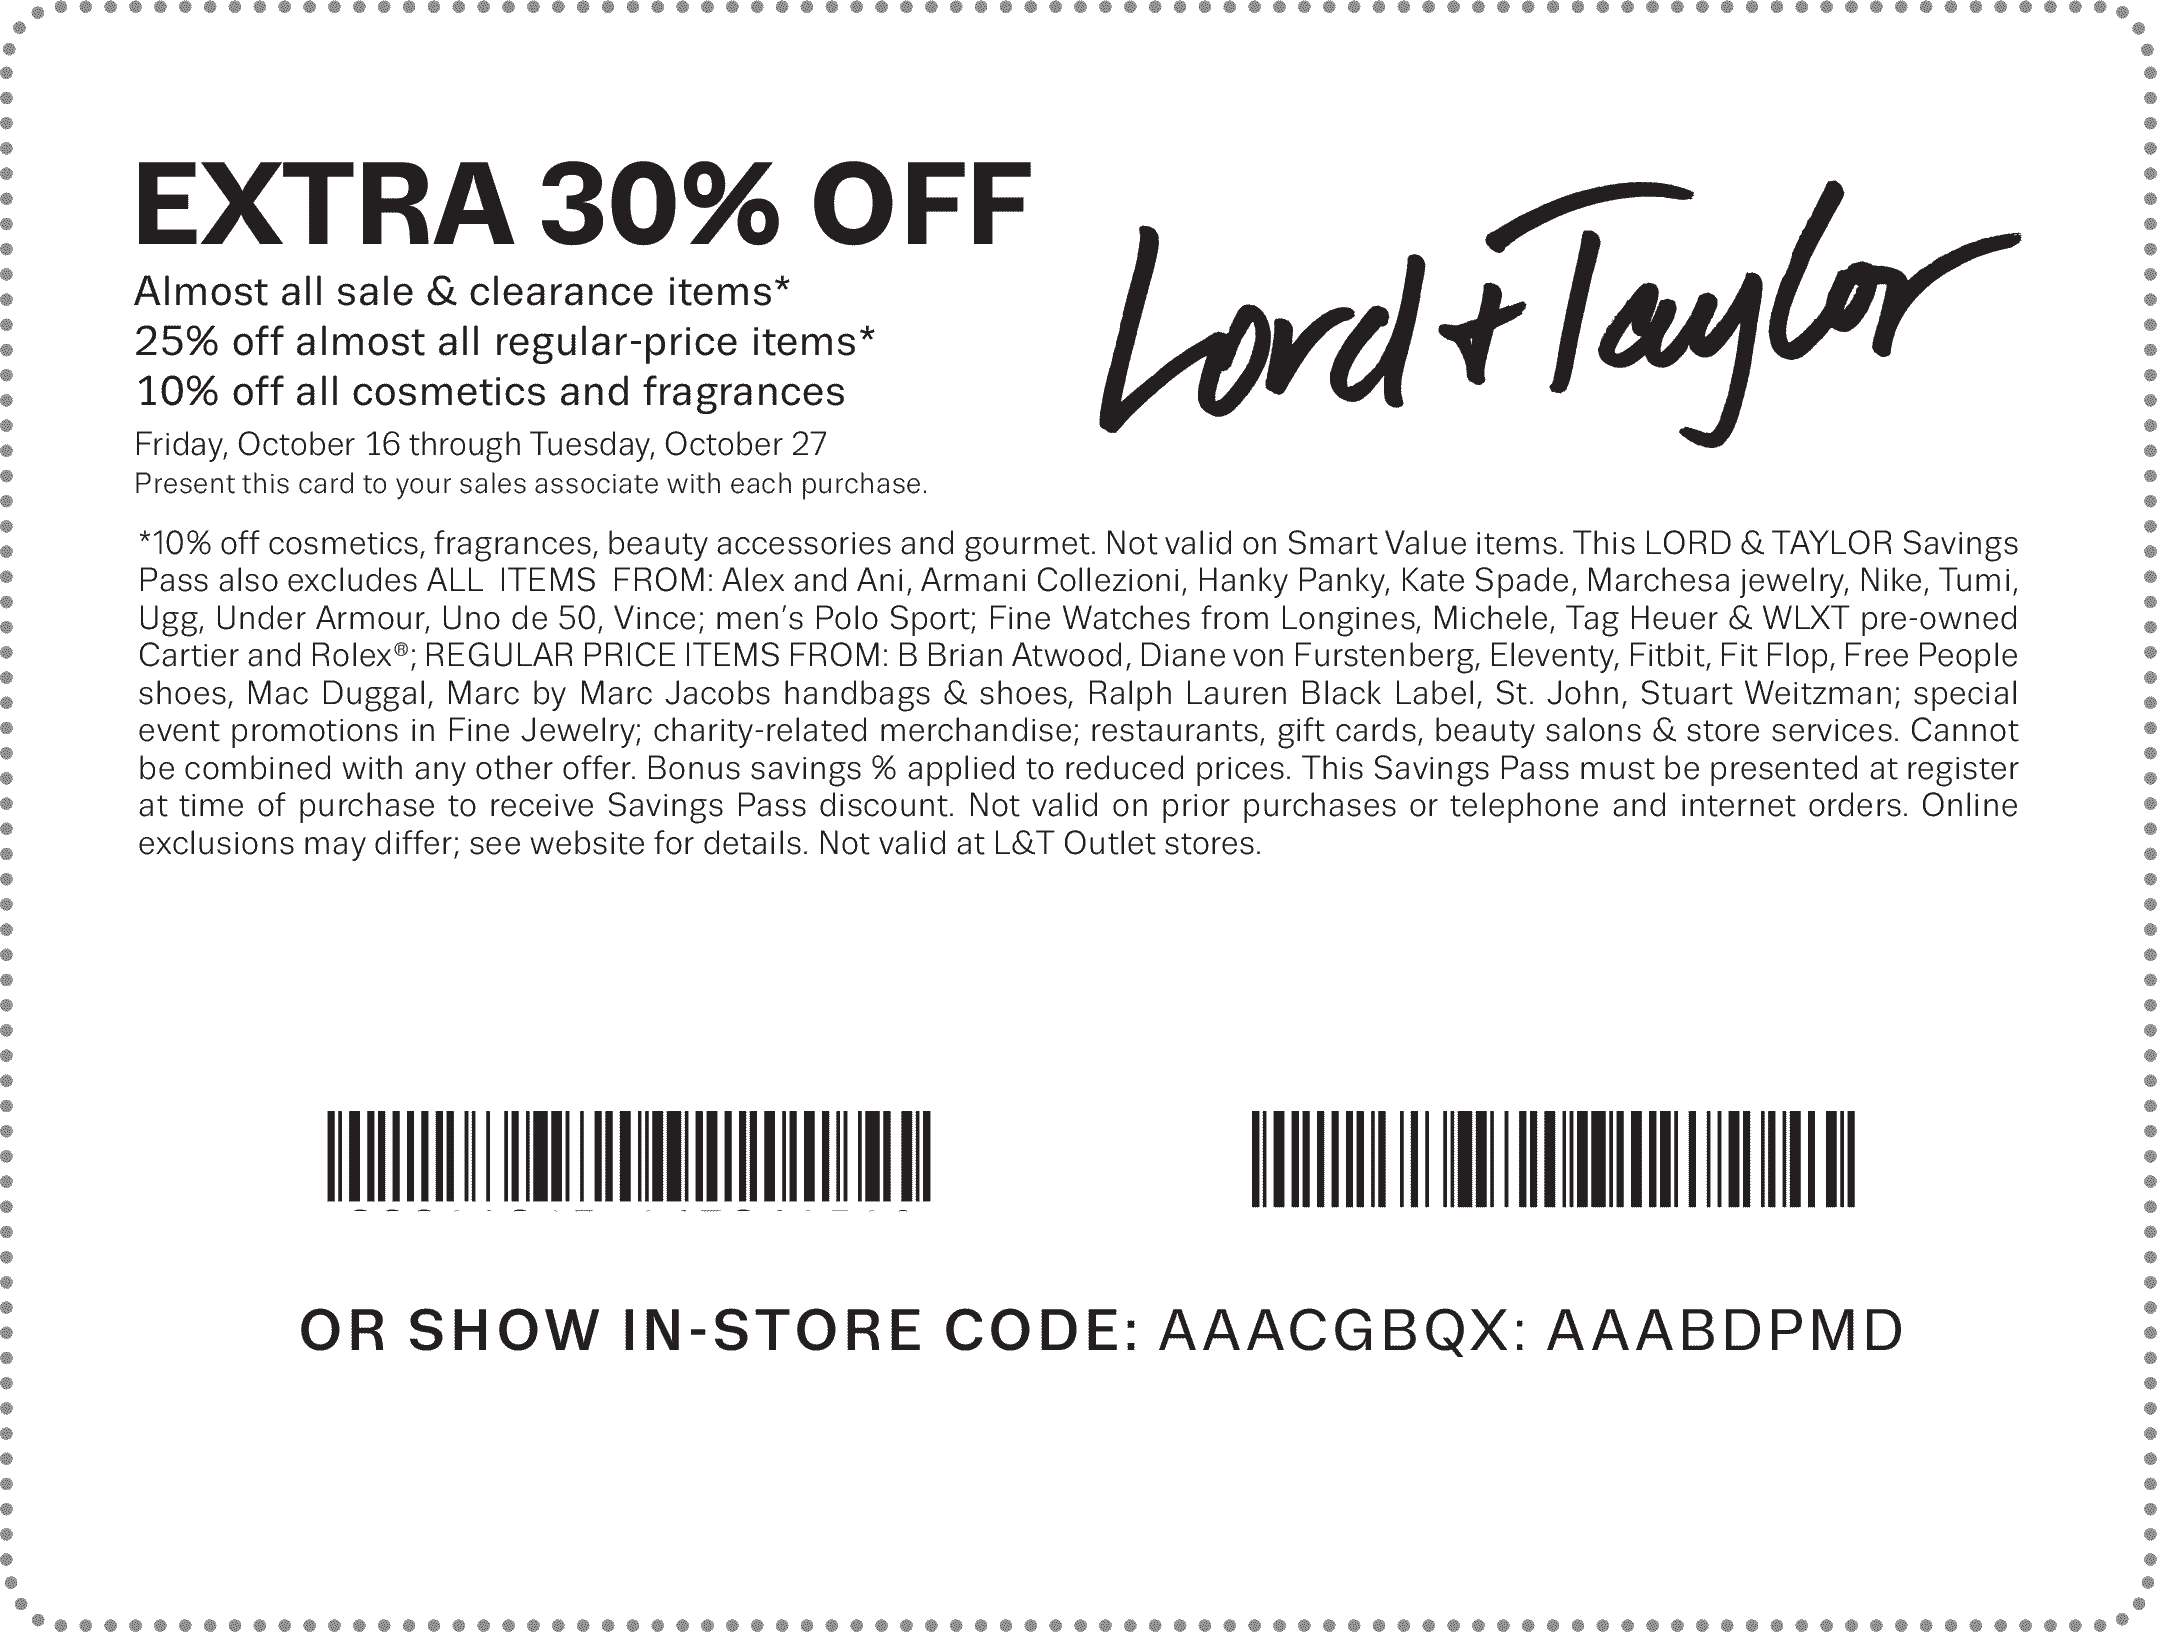 Lord & Taylor Coupon April 2017 Extra 30% off at Lord & Taylor, or online via promo code FRIENDS